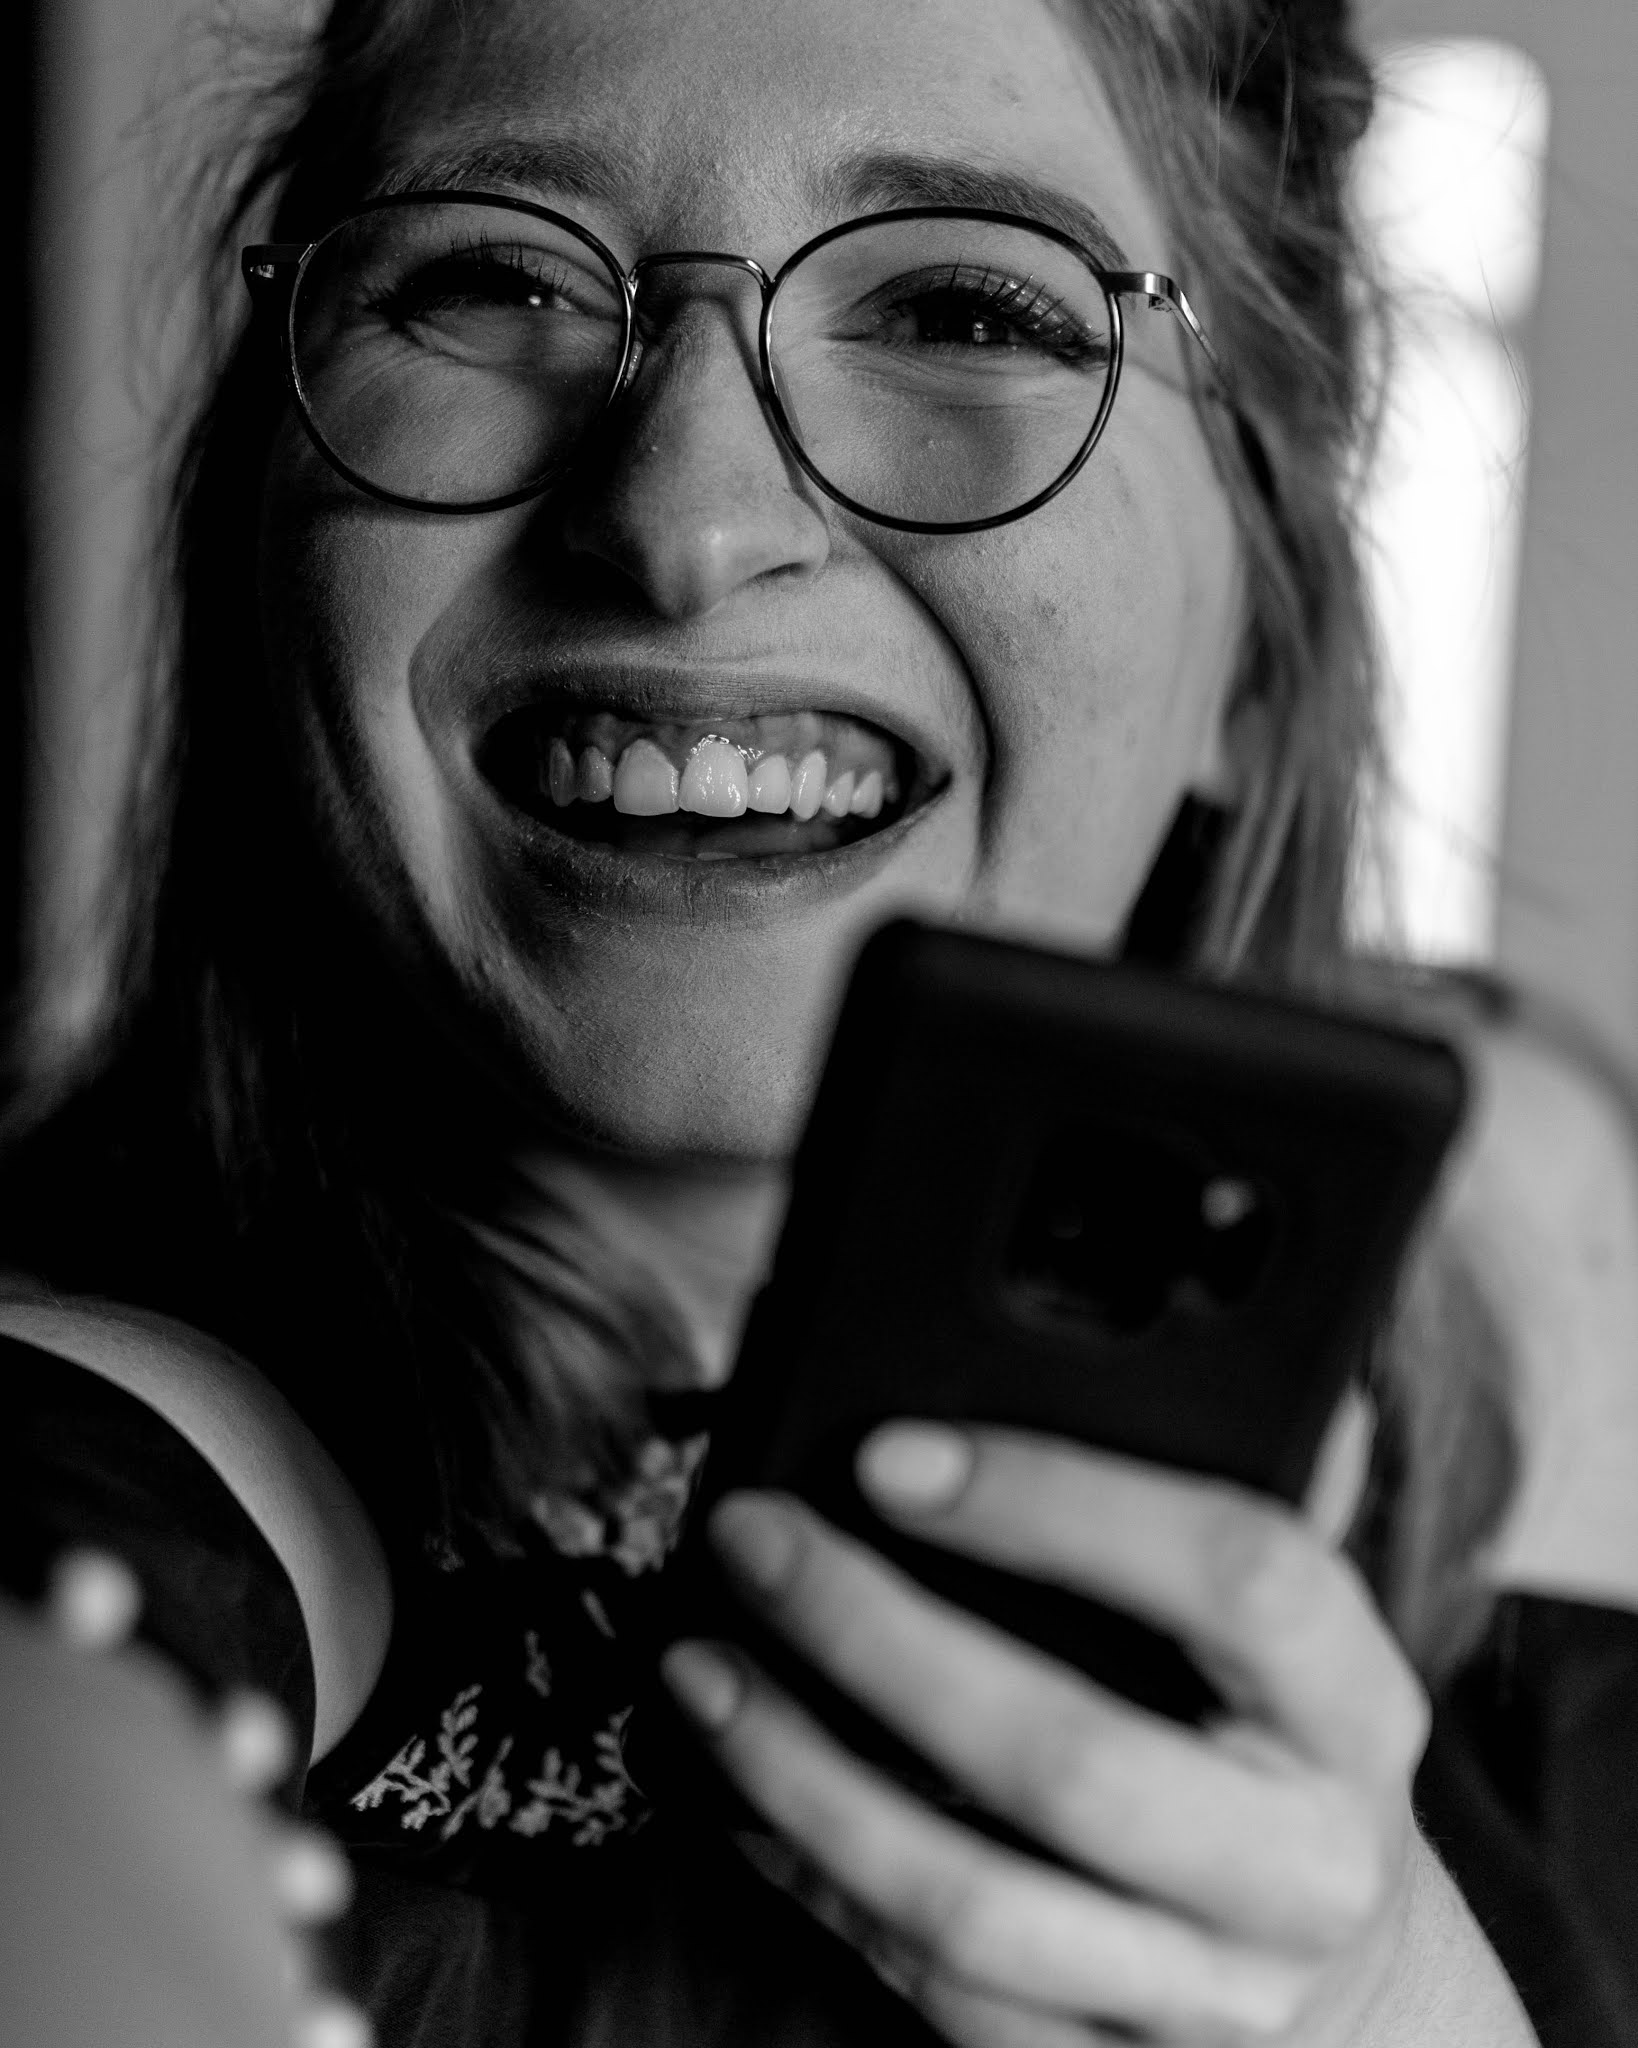 black and white image of girl smiling and holding phone